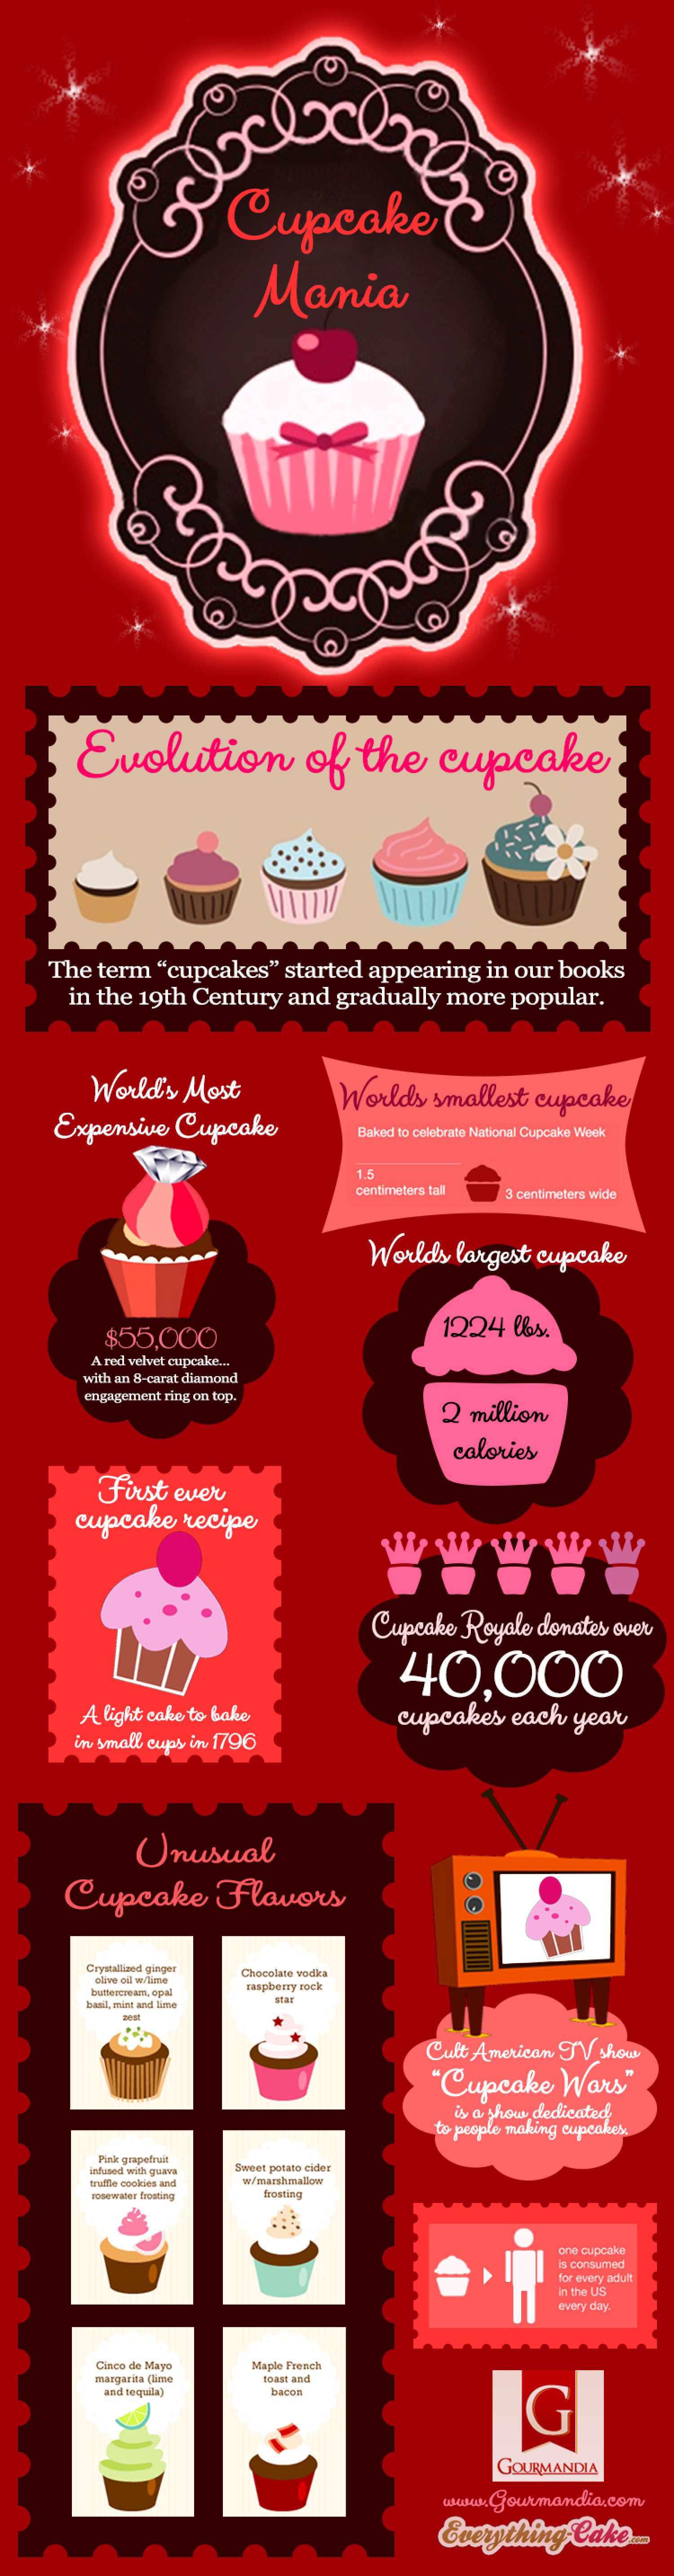 Cupcake Mania Infographic